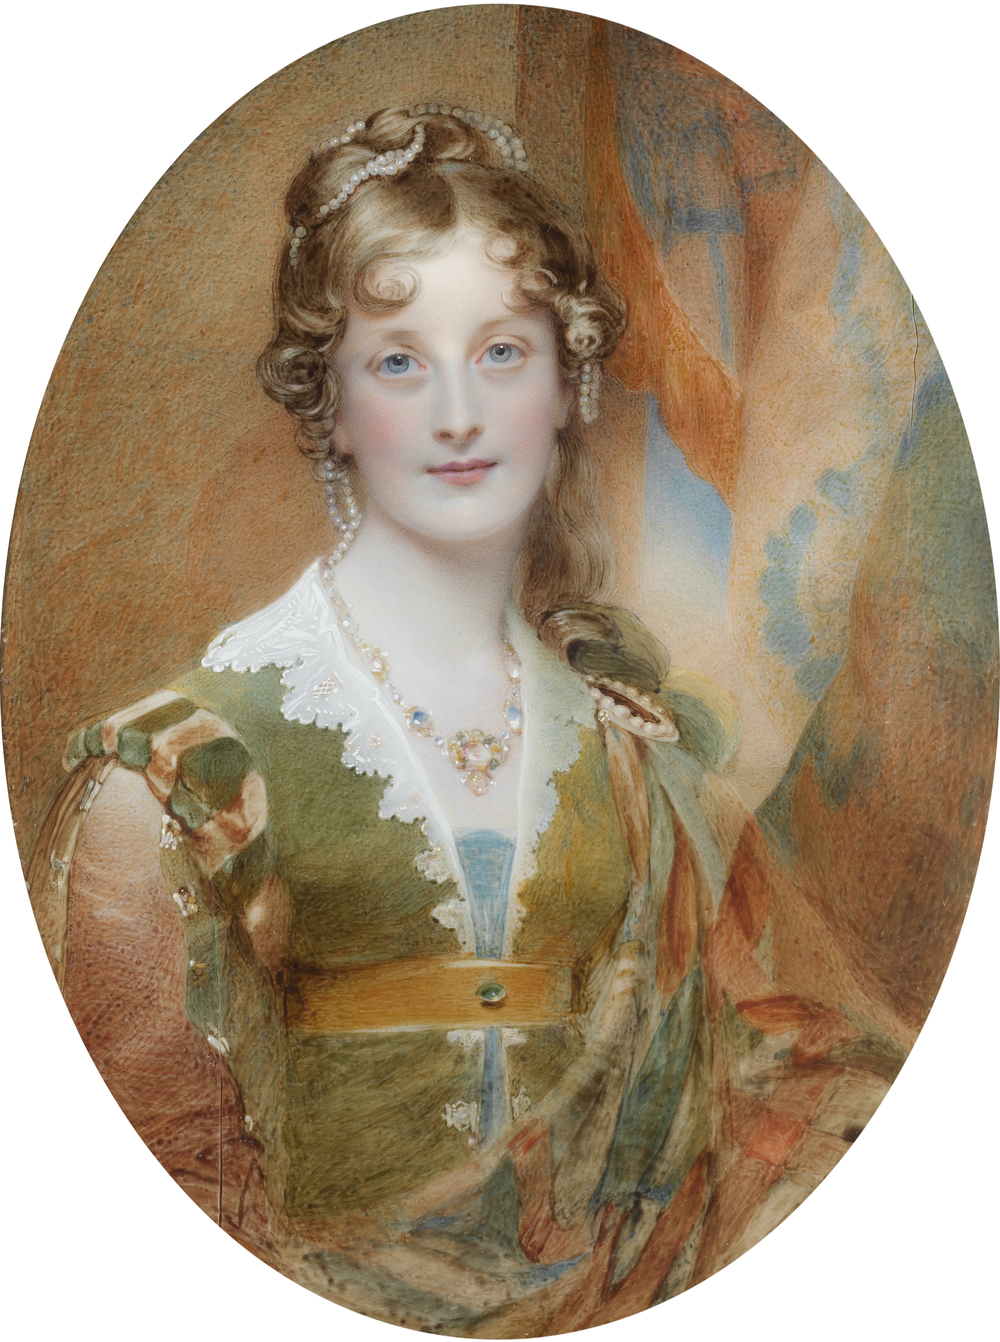 Jane_Digby,_Lady_Ellenborough,_by_William_Charles_Ross.jpg